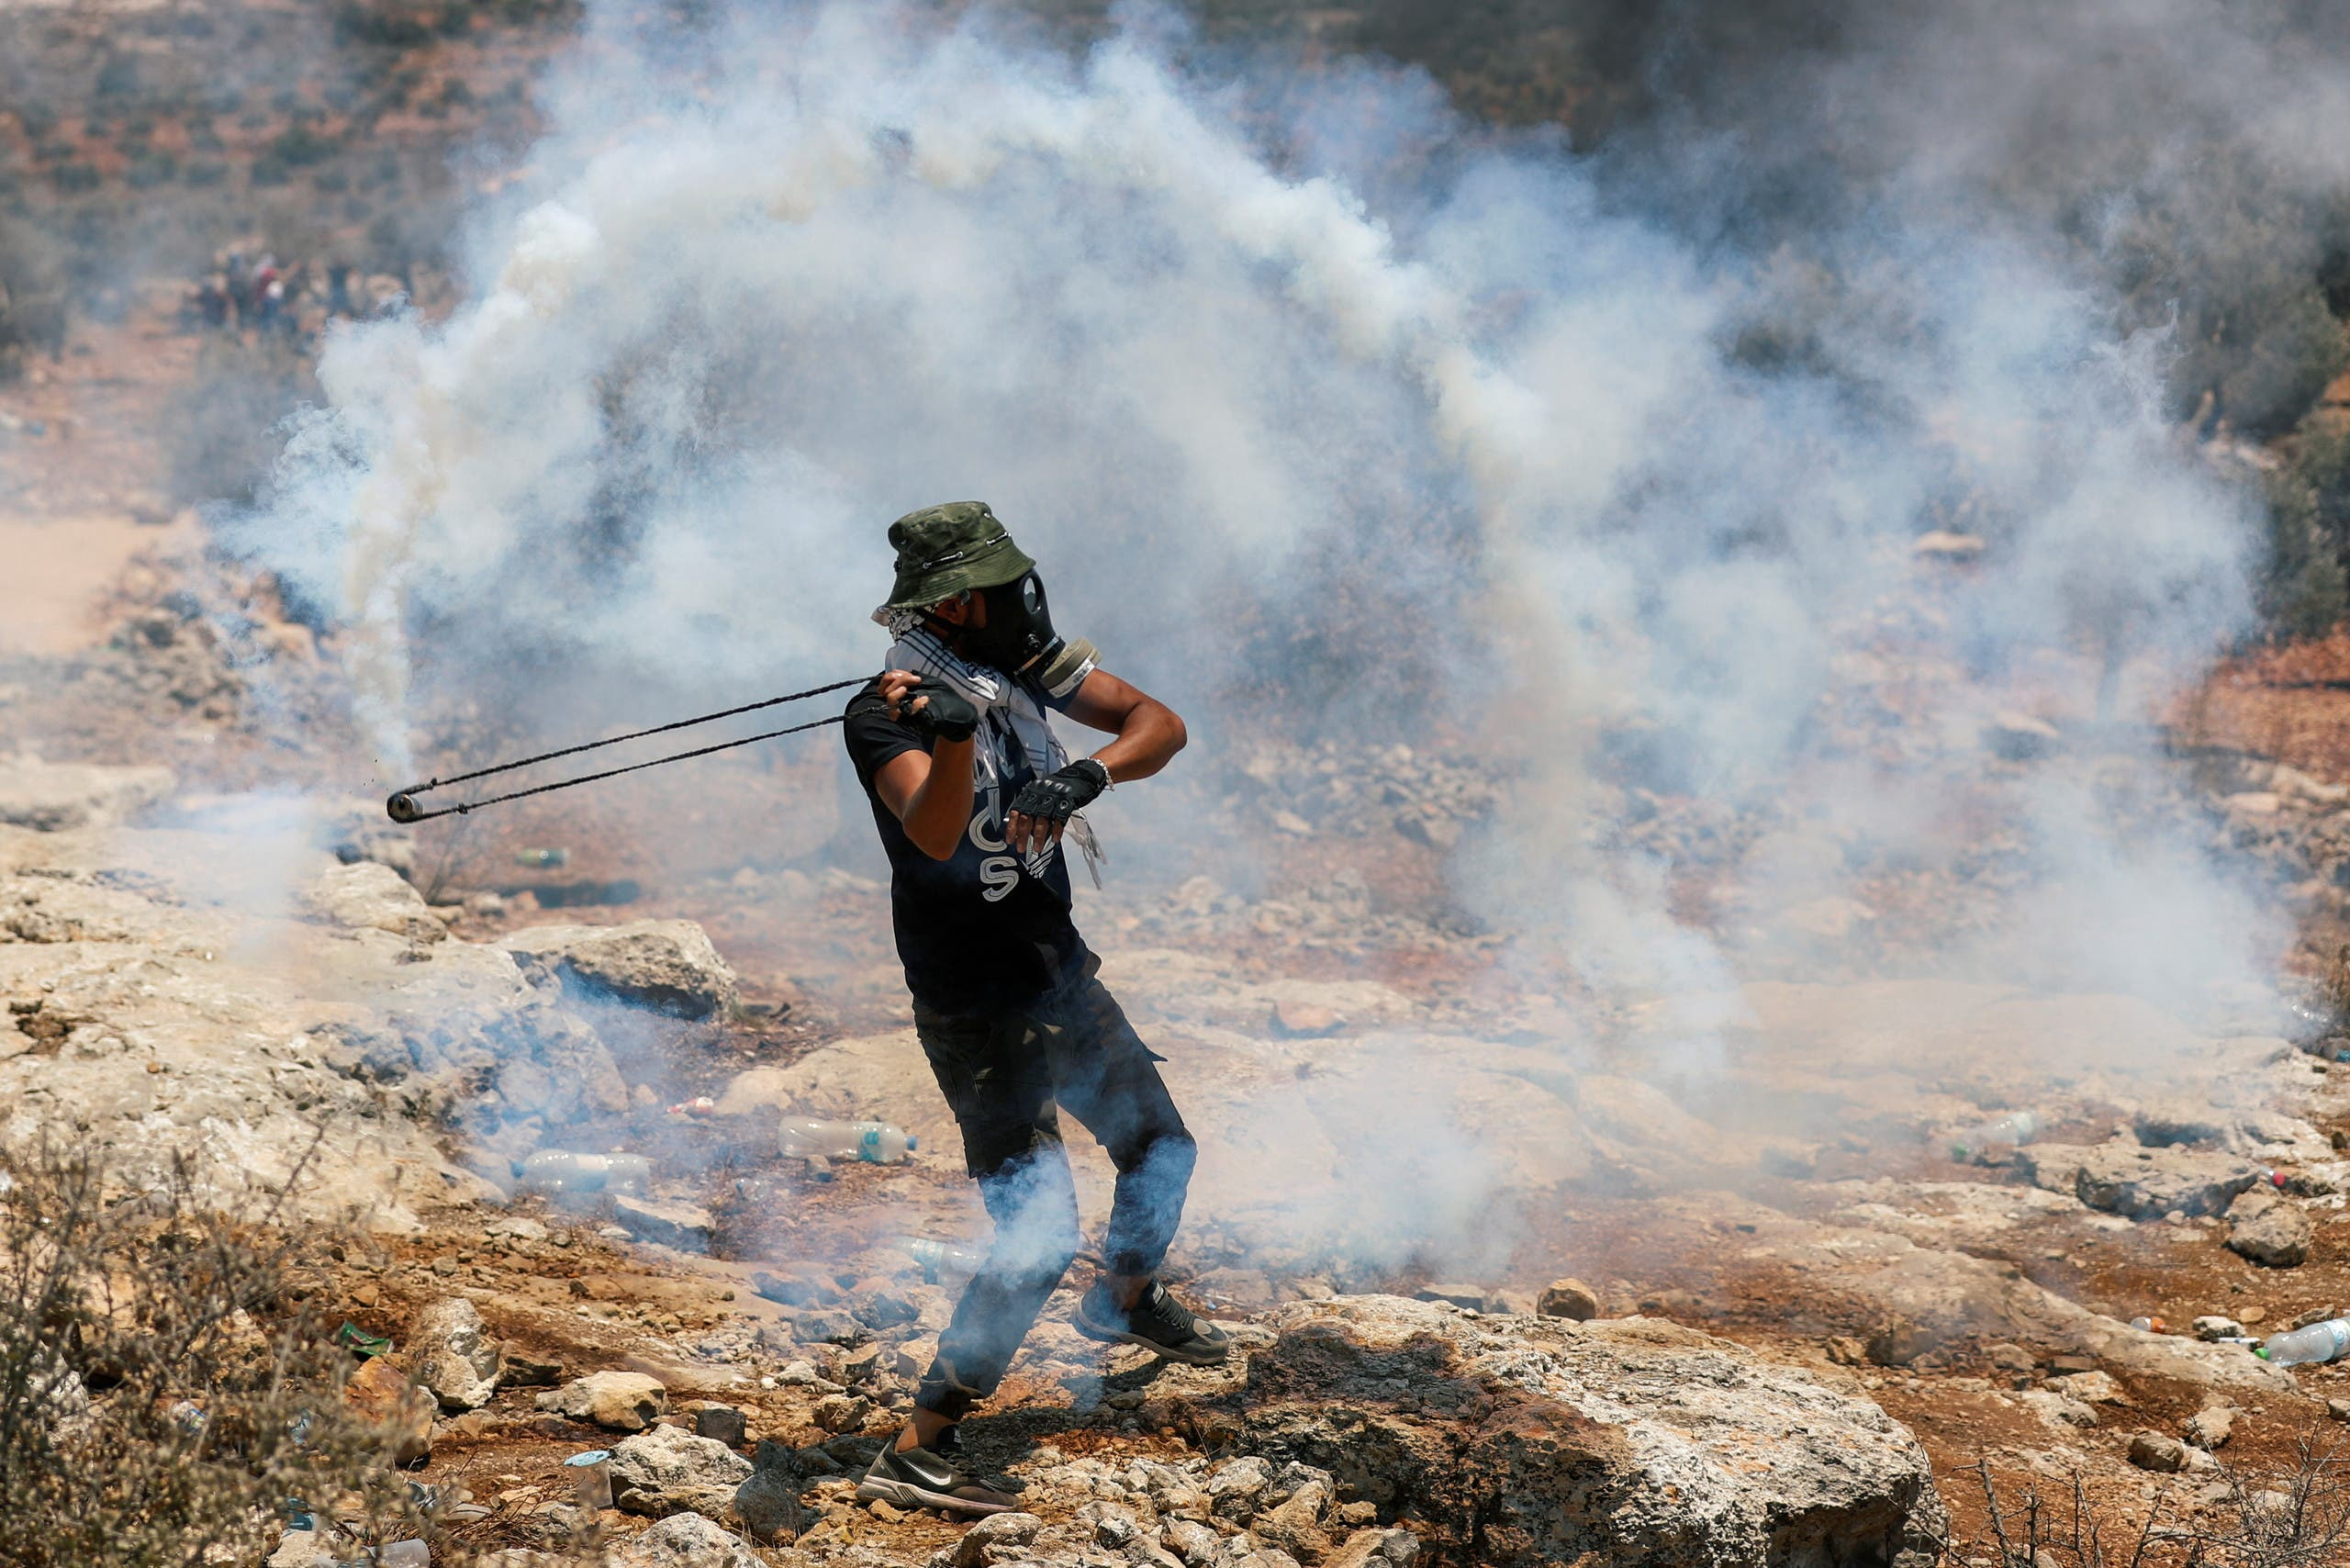 A Palestinian demonstrator uses a slingshot during a protest against Israeli settlements, in Beita, in the Israeli-occupied West Bank July 9, 2021. (Reuters)